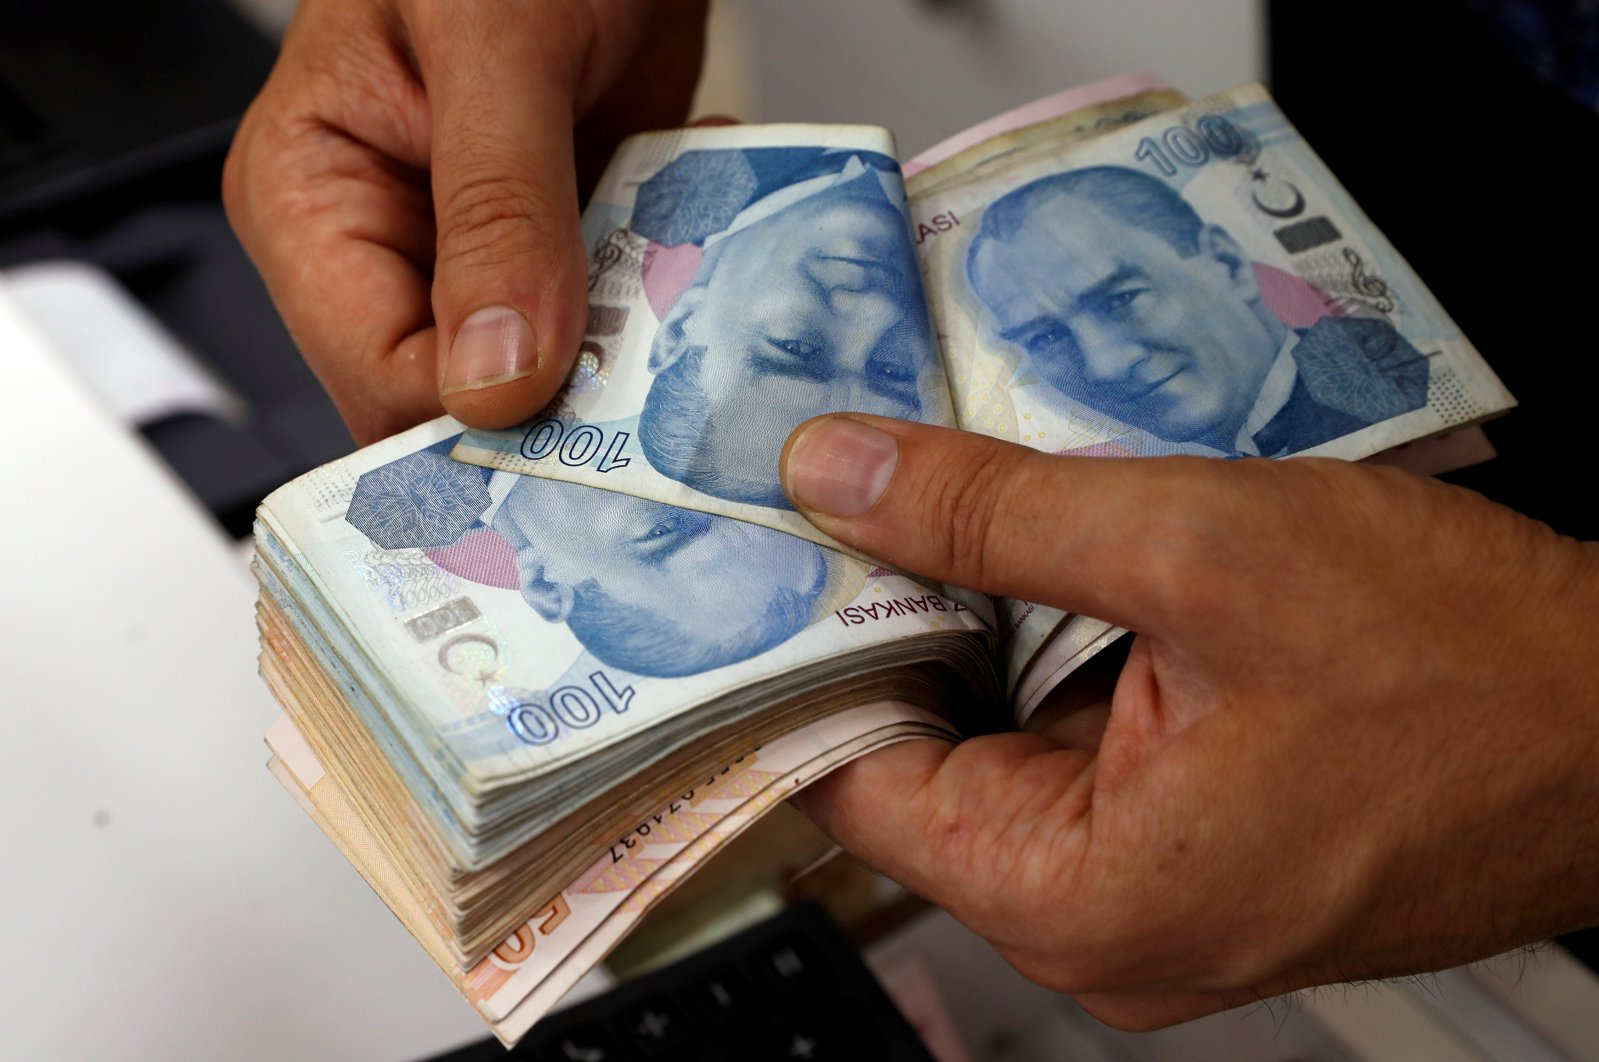 Turkish lira banknotes are counted at a currency exchange office in Istanbul, Turkey, Aug. 2, 2018. (Reuters Photo)